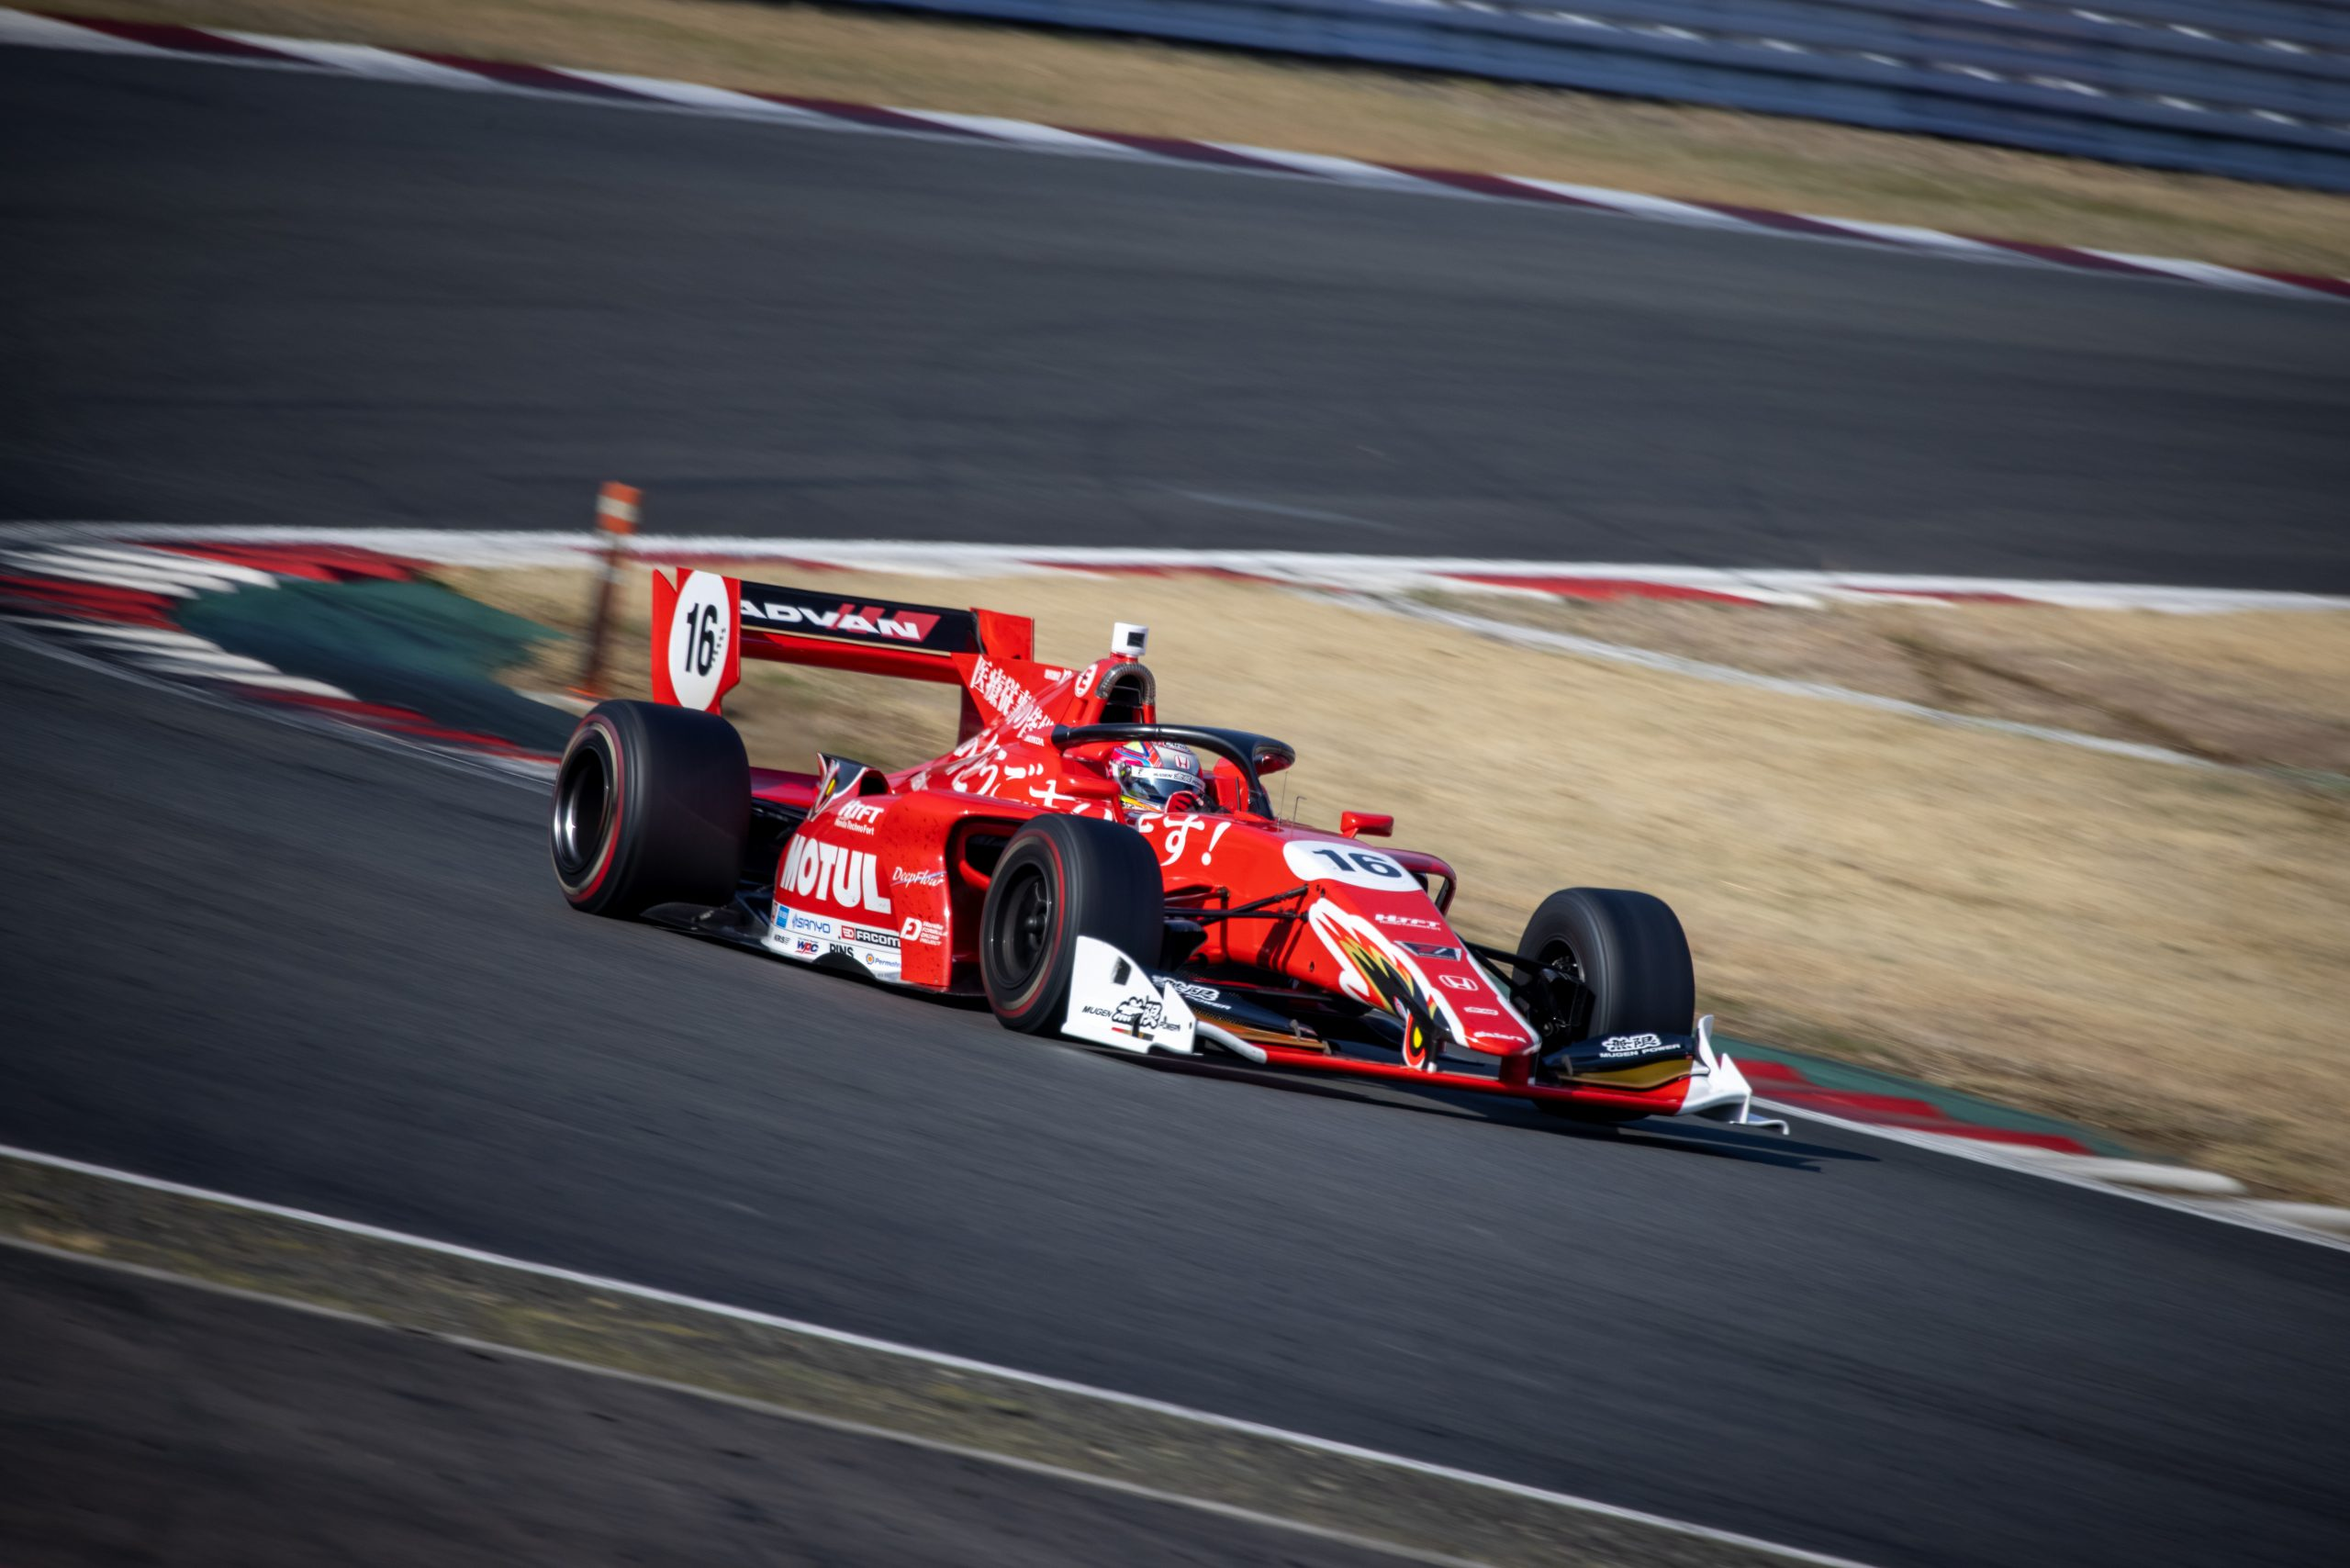 Motorsports photo #15【Canon RF800mm F11 IS STM】